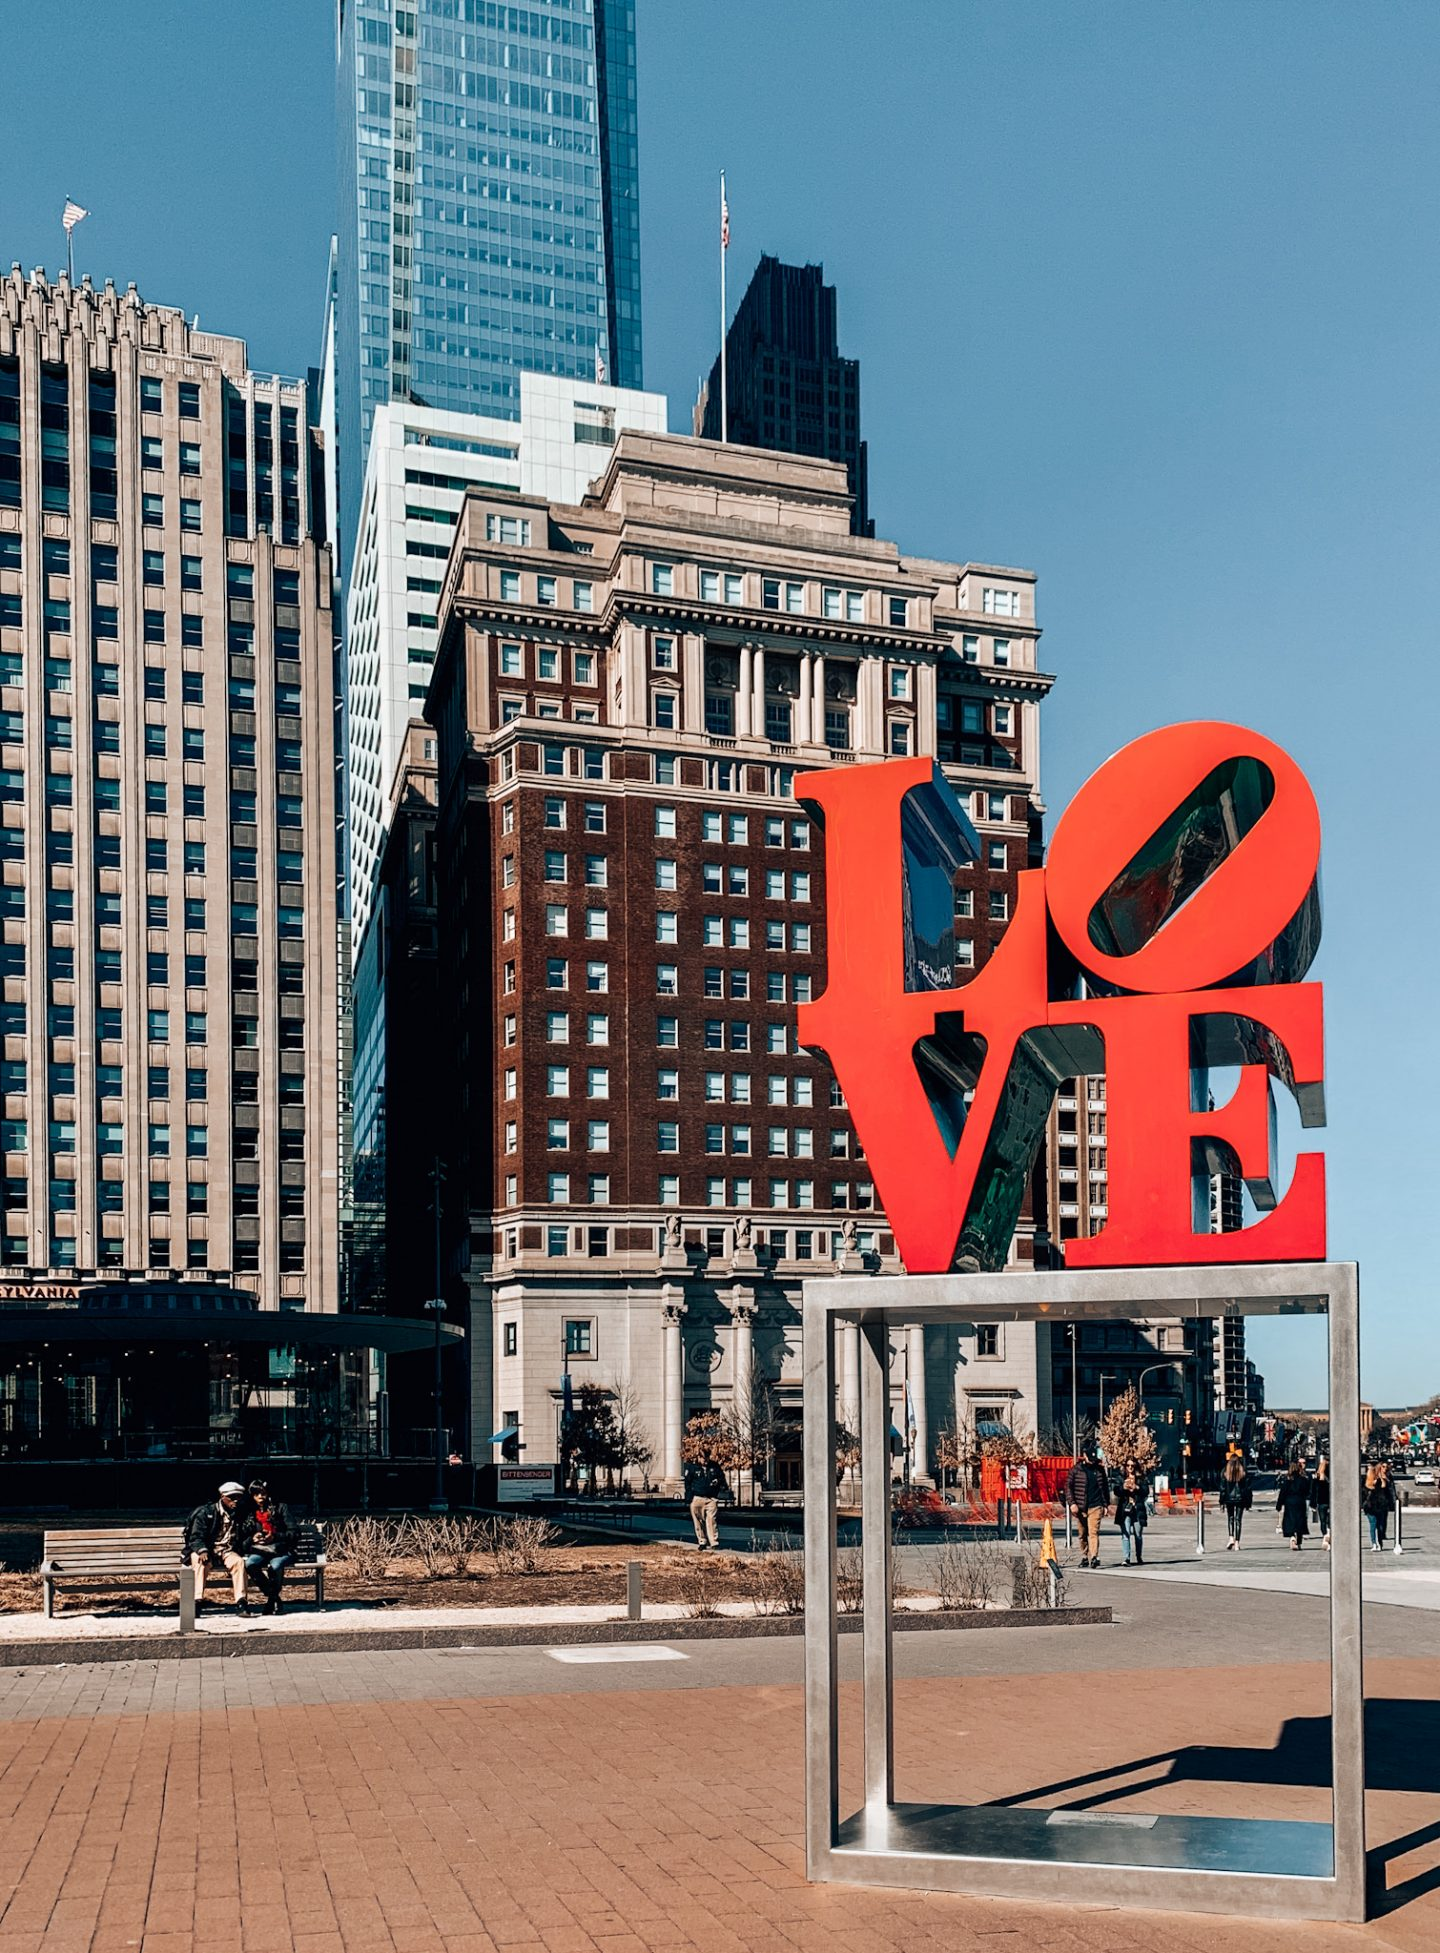 Philadelphia's famous LOVE sculpture